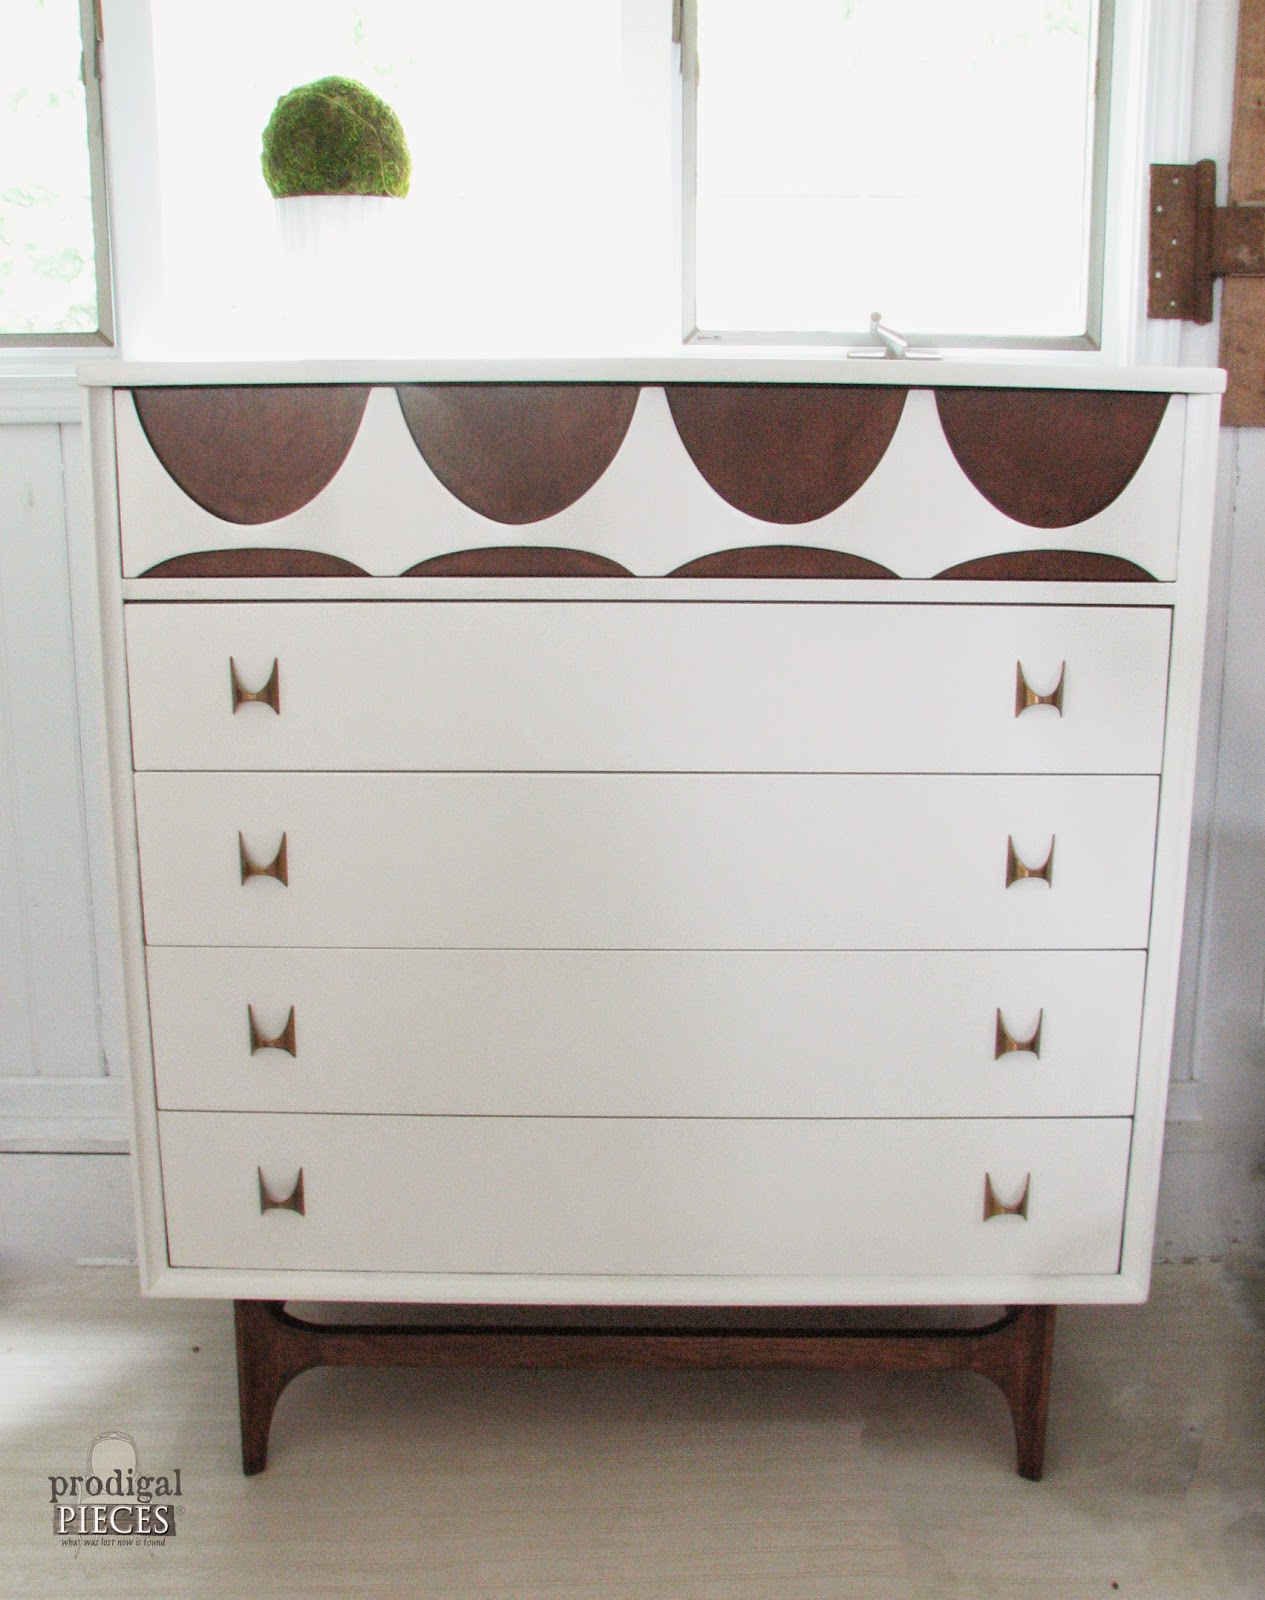 Thrifted Broyhill Brasilia Chest of Drawers Loses Its Flower Power with Makeover by http://www.prodigalpieces.com